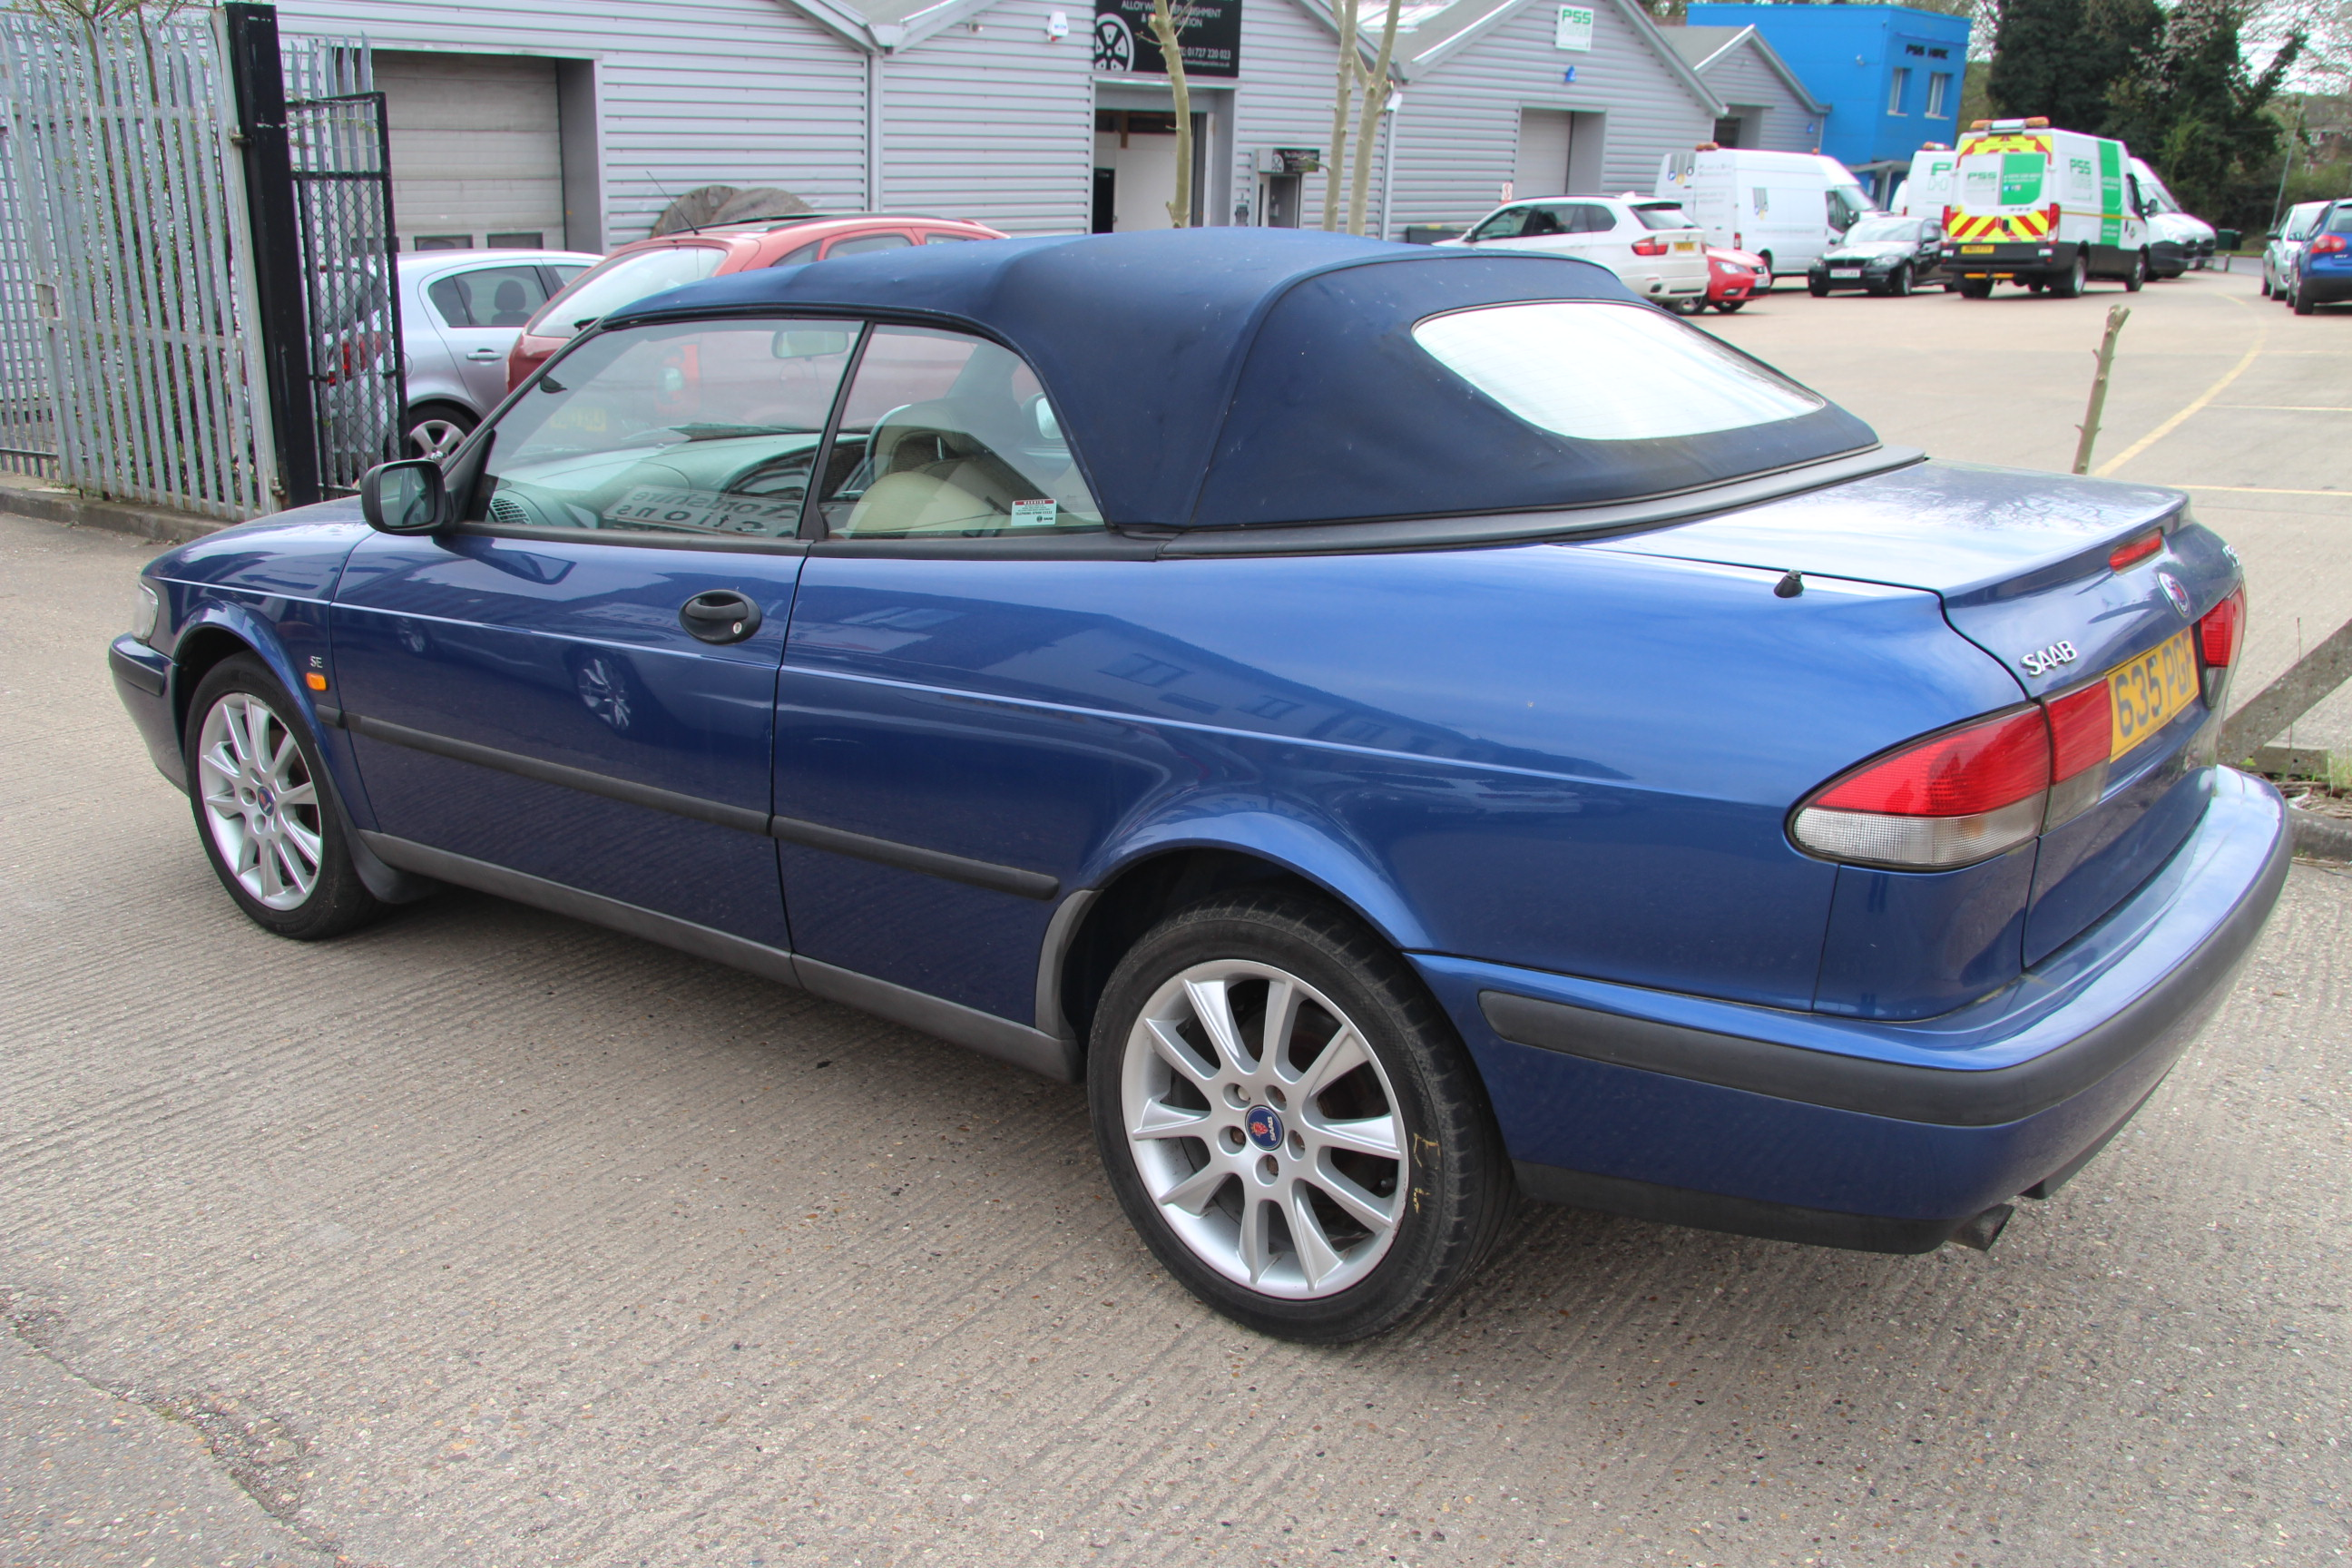 car saab t635 pgf 133574 miles convertible two sets of keys mot till june 2015 we now h. Black Bedroom Furniture Sets. Home Design Ideas